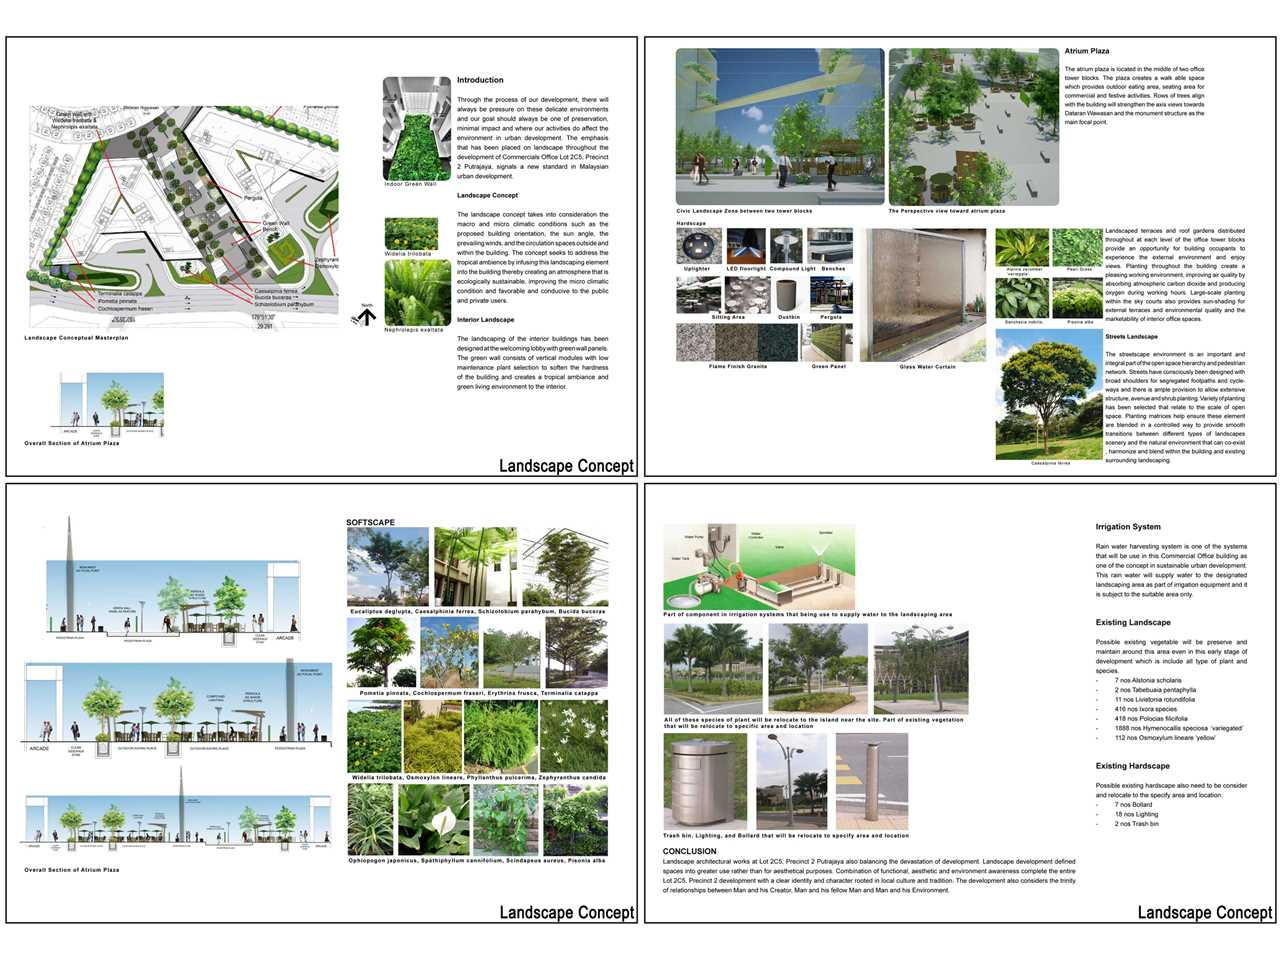 Project Entry 2011 Ecologically Designed Retail And Commercial Building Putrajaya Malaysia Habitat Landscaping Concept